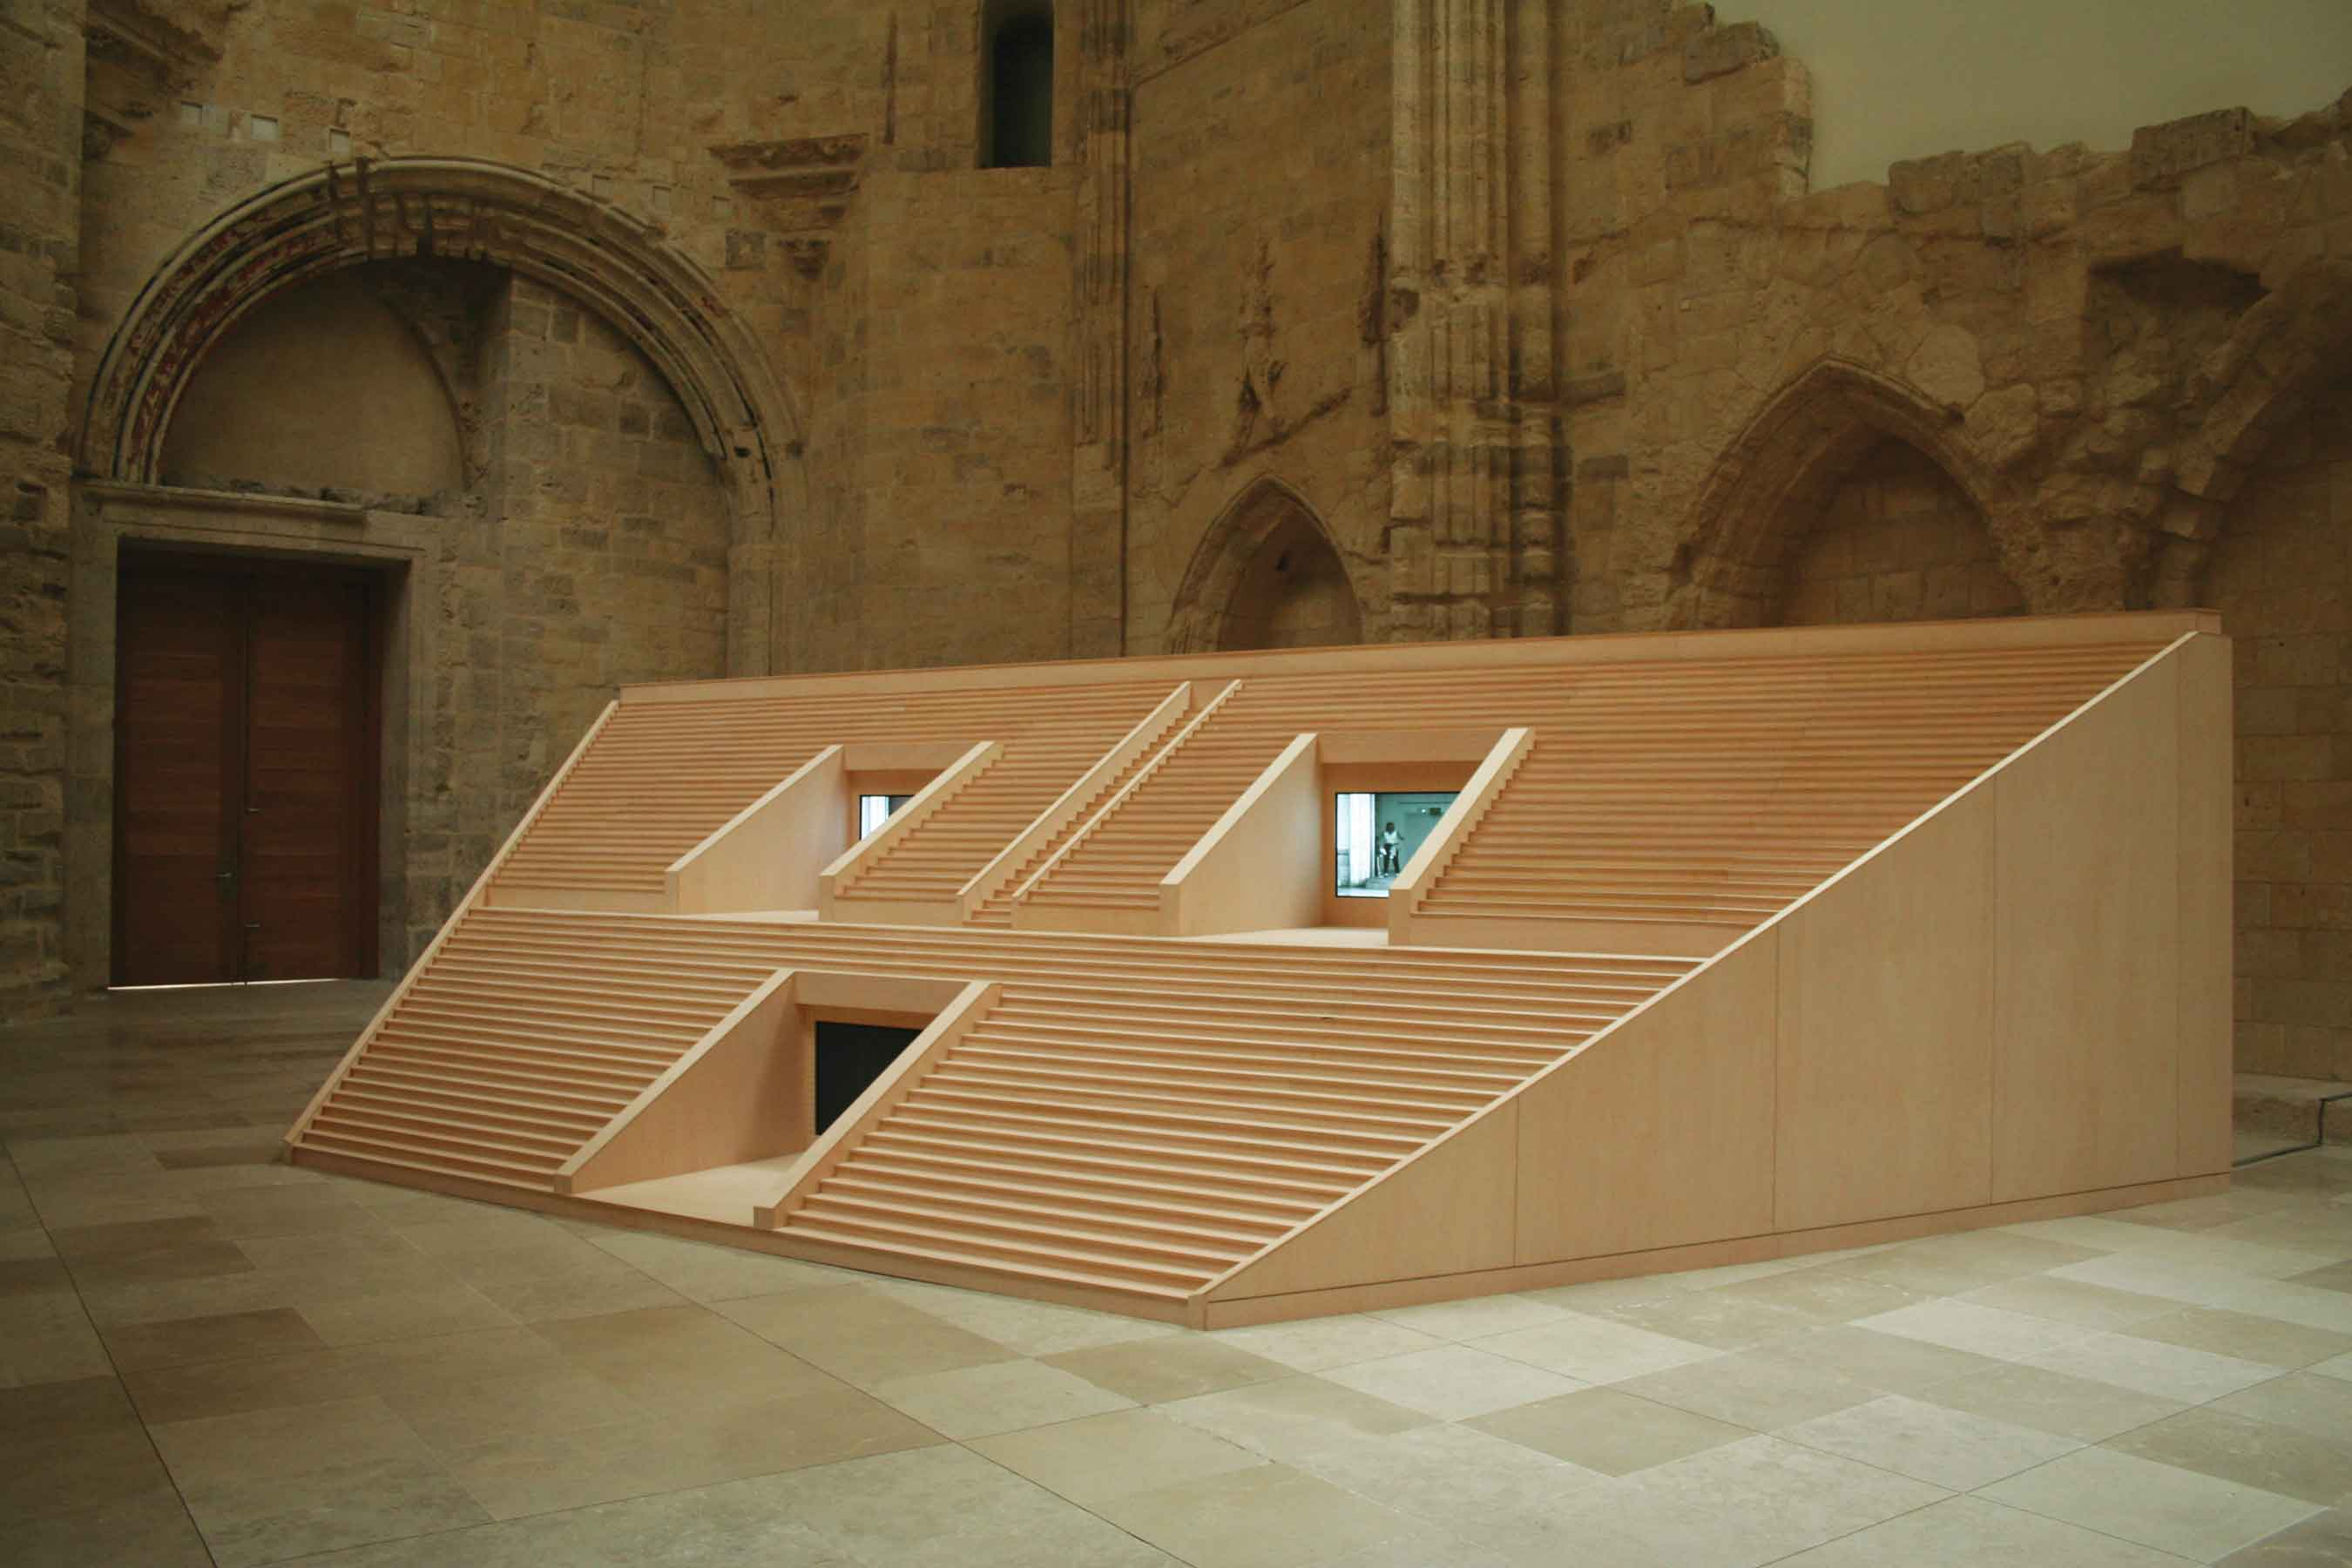 Perpetual Free Entrance, 2006, wood, three plasma TVs, video and audio installation, 36' x 13' x 8'